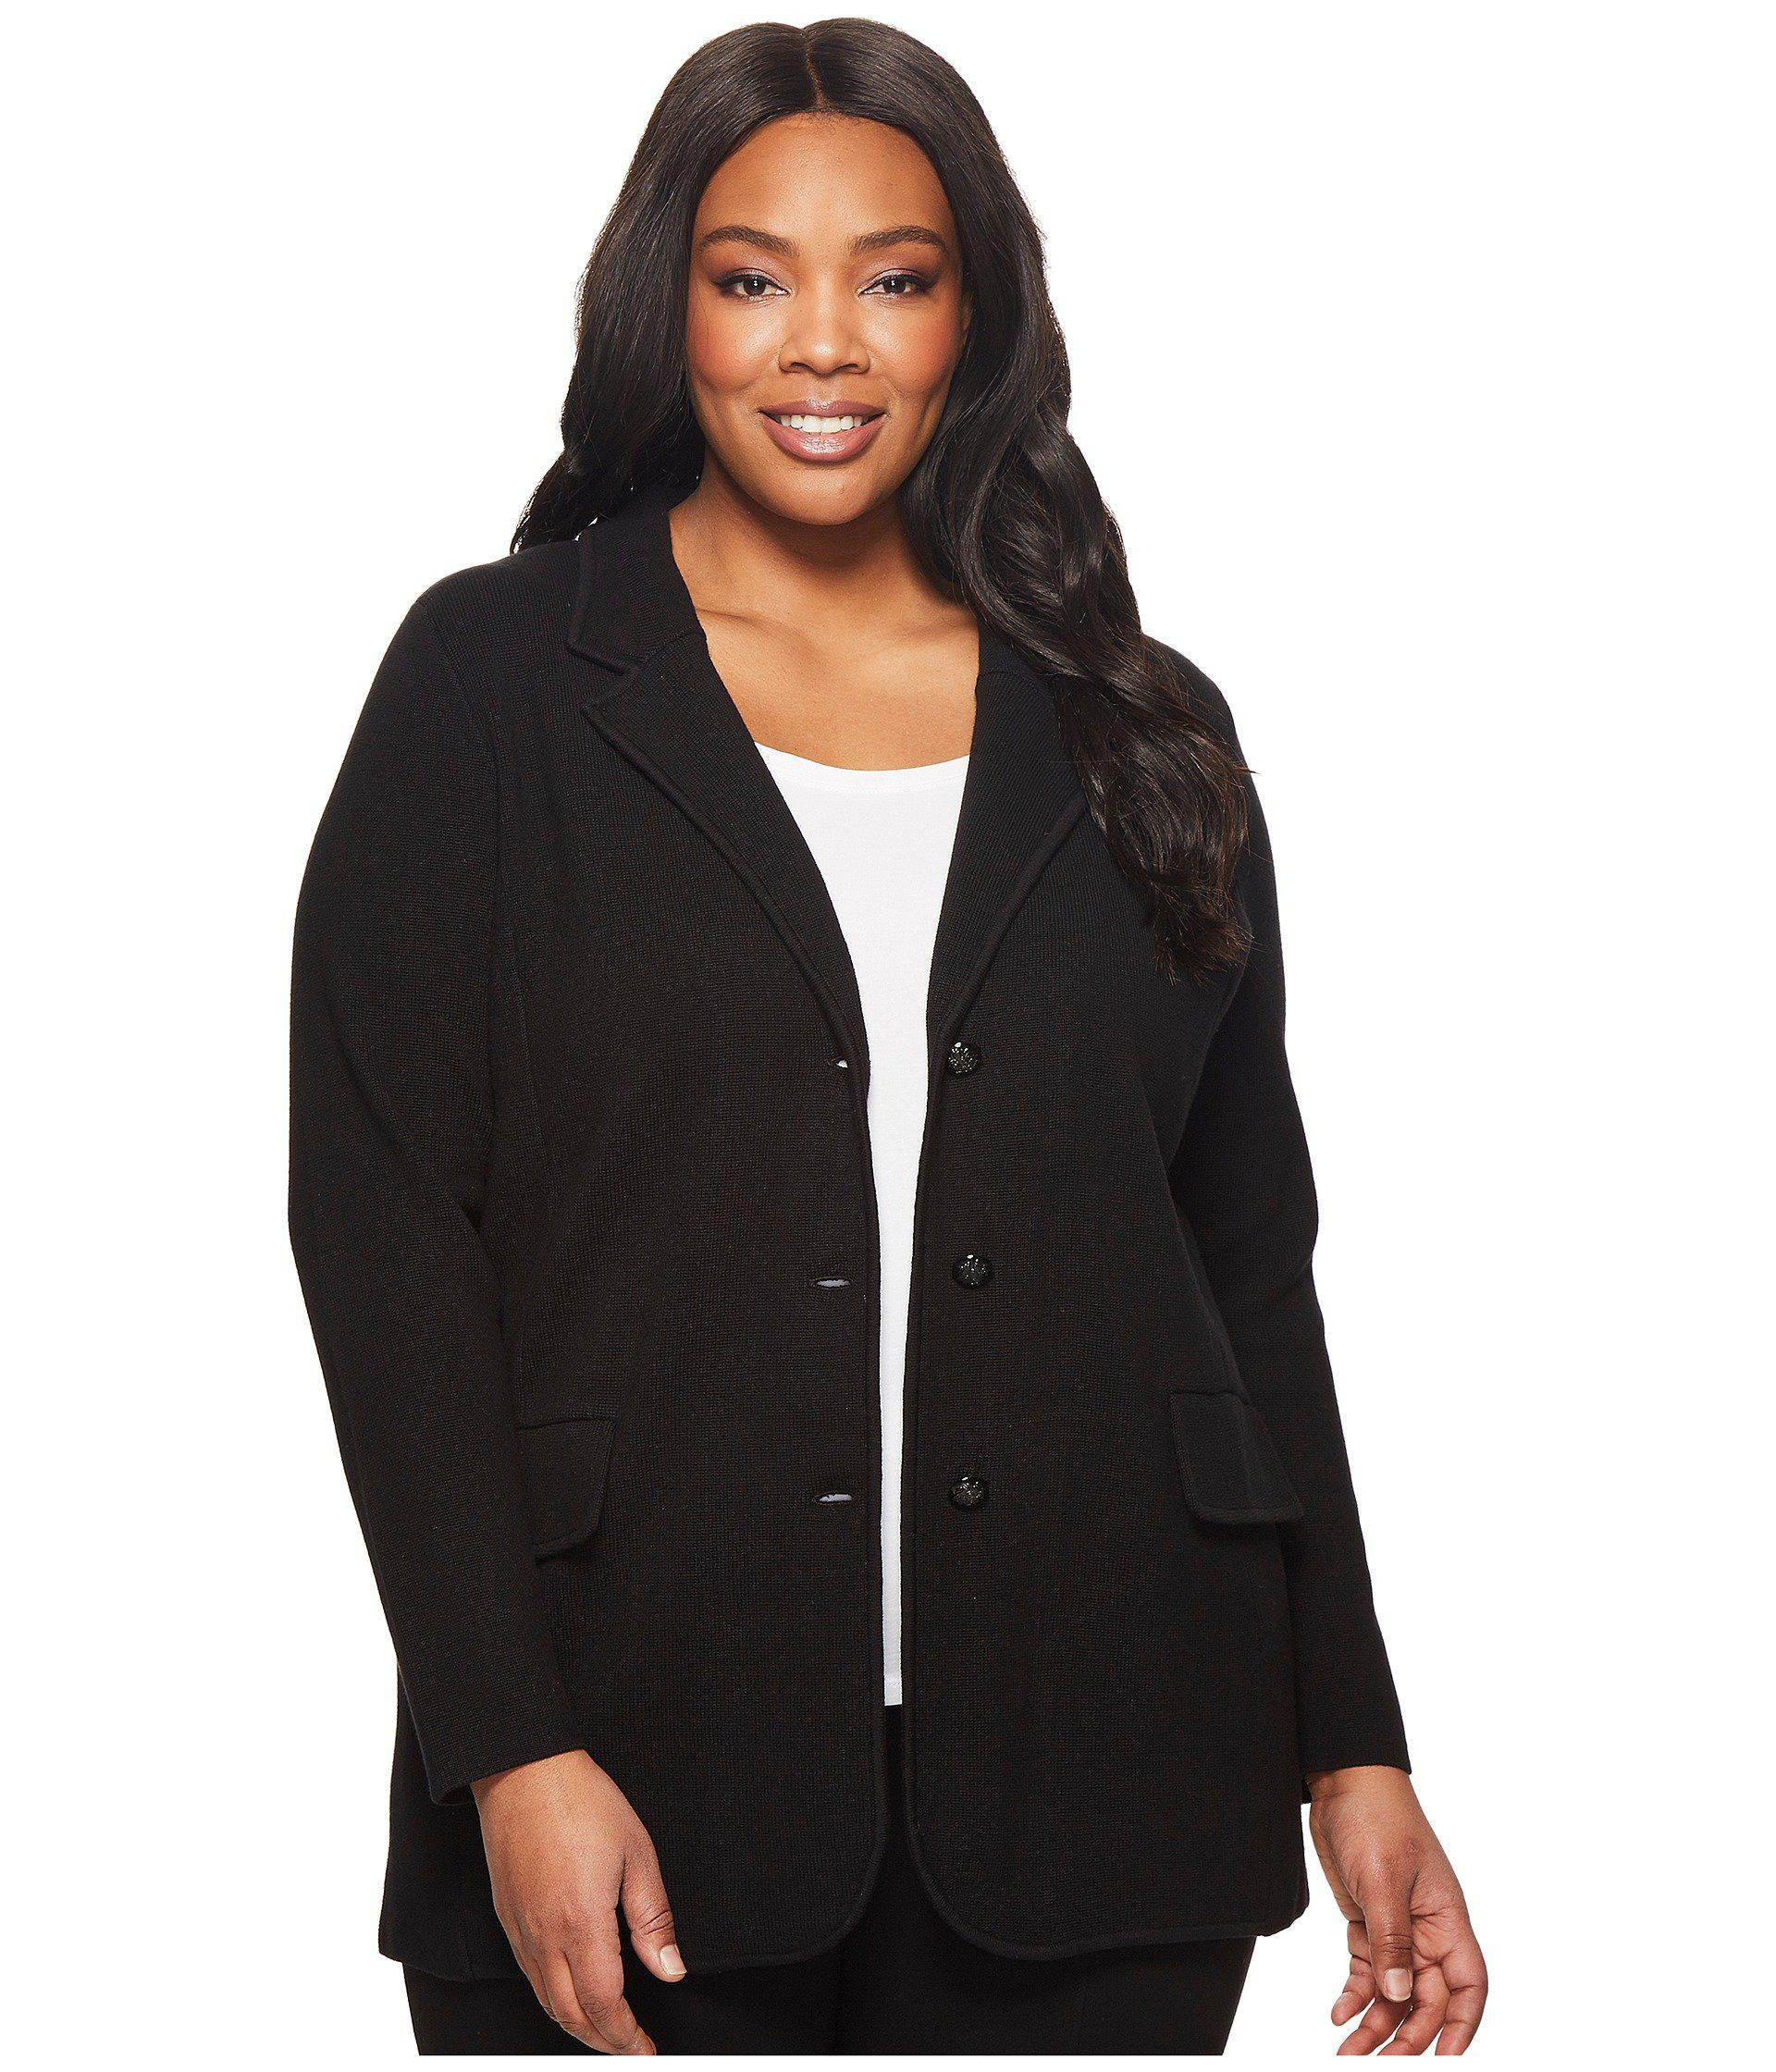 f4d857c9f5f5e Lyst - Lauren by Ralph Lauren Plus Size Knit Sweater Blazer (black ...